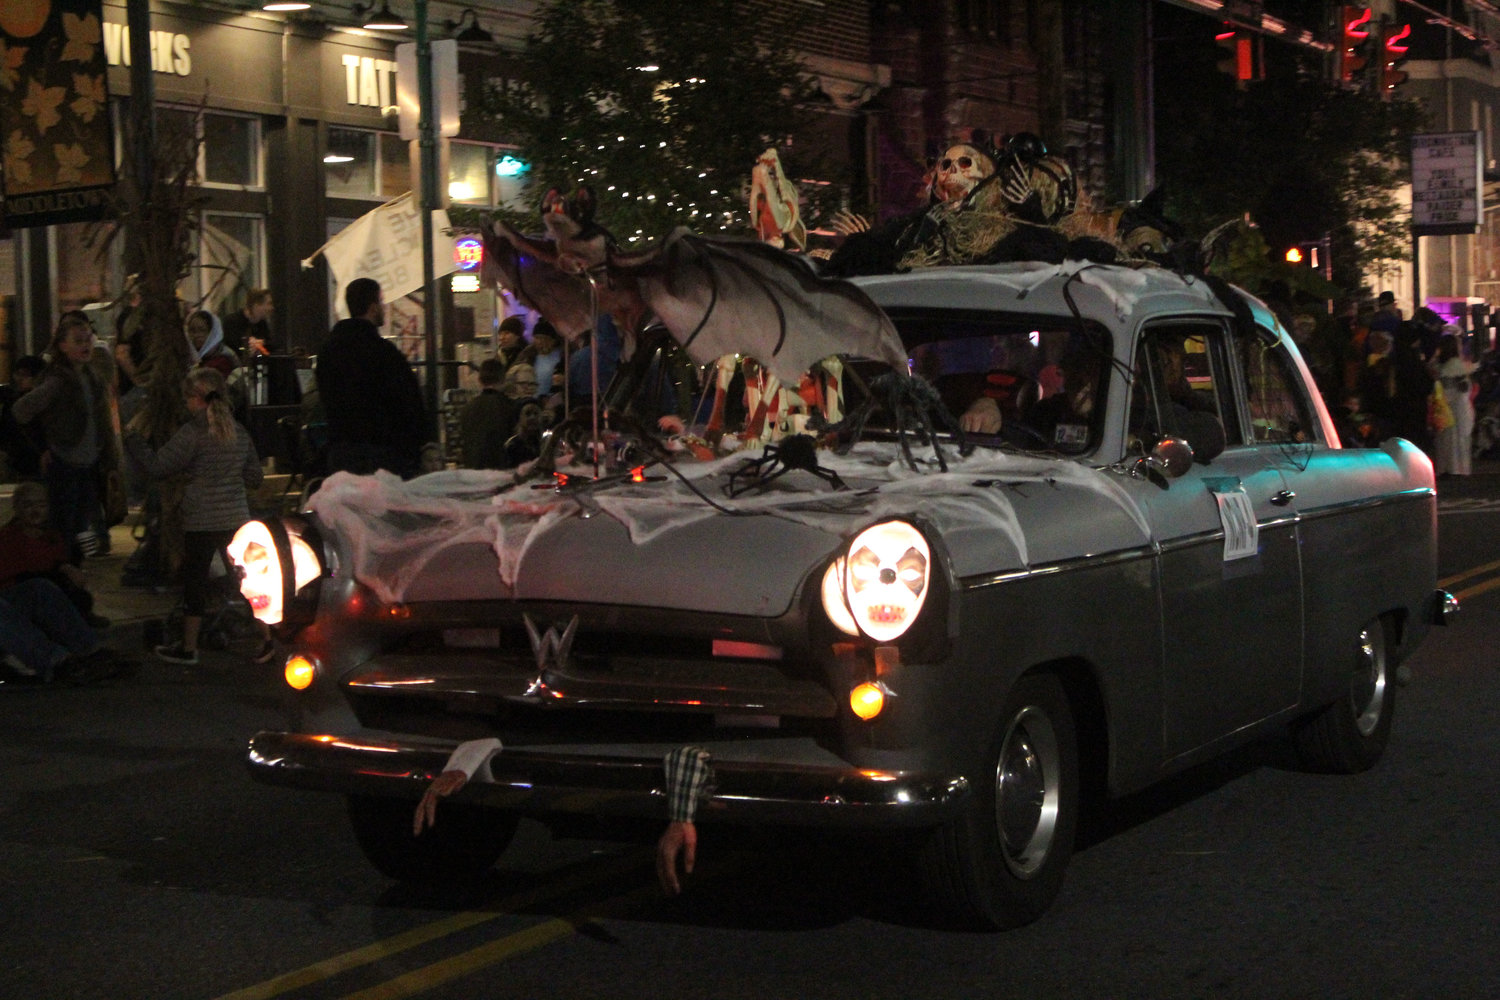 A decorated car drives through the Halloween parade on Oct. 16.